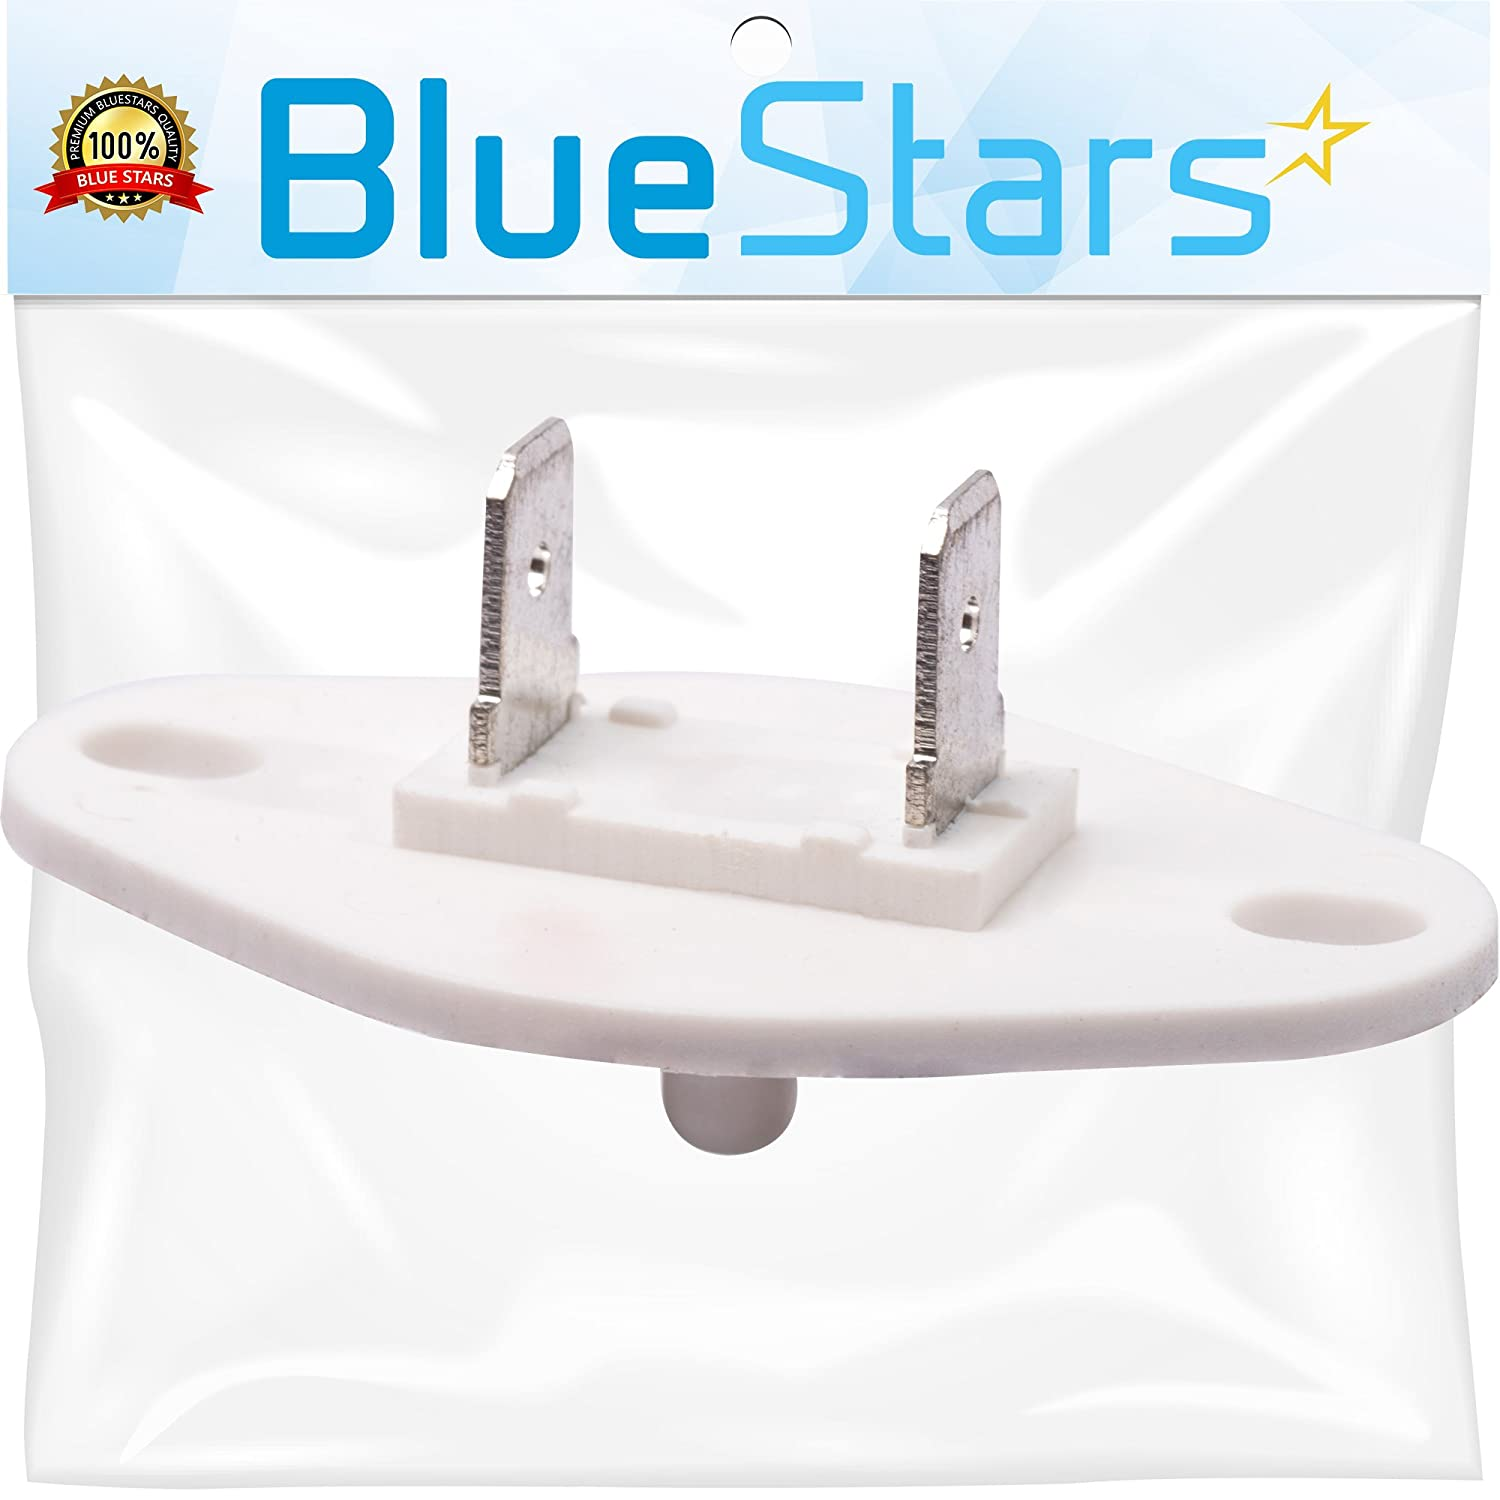 8577274 Dryer Thermistor Replacement part by Blue Stars - Exact Fit for Whirlpool Kenmore KitchenAid dryers - Replaces AP3919451, PS993287, 3390292